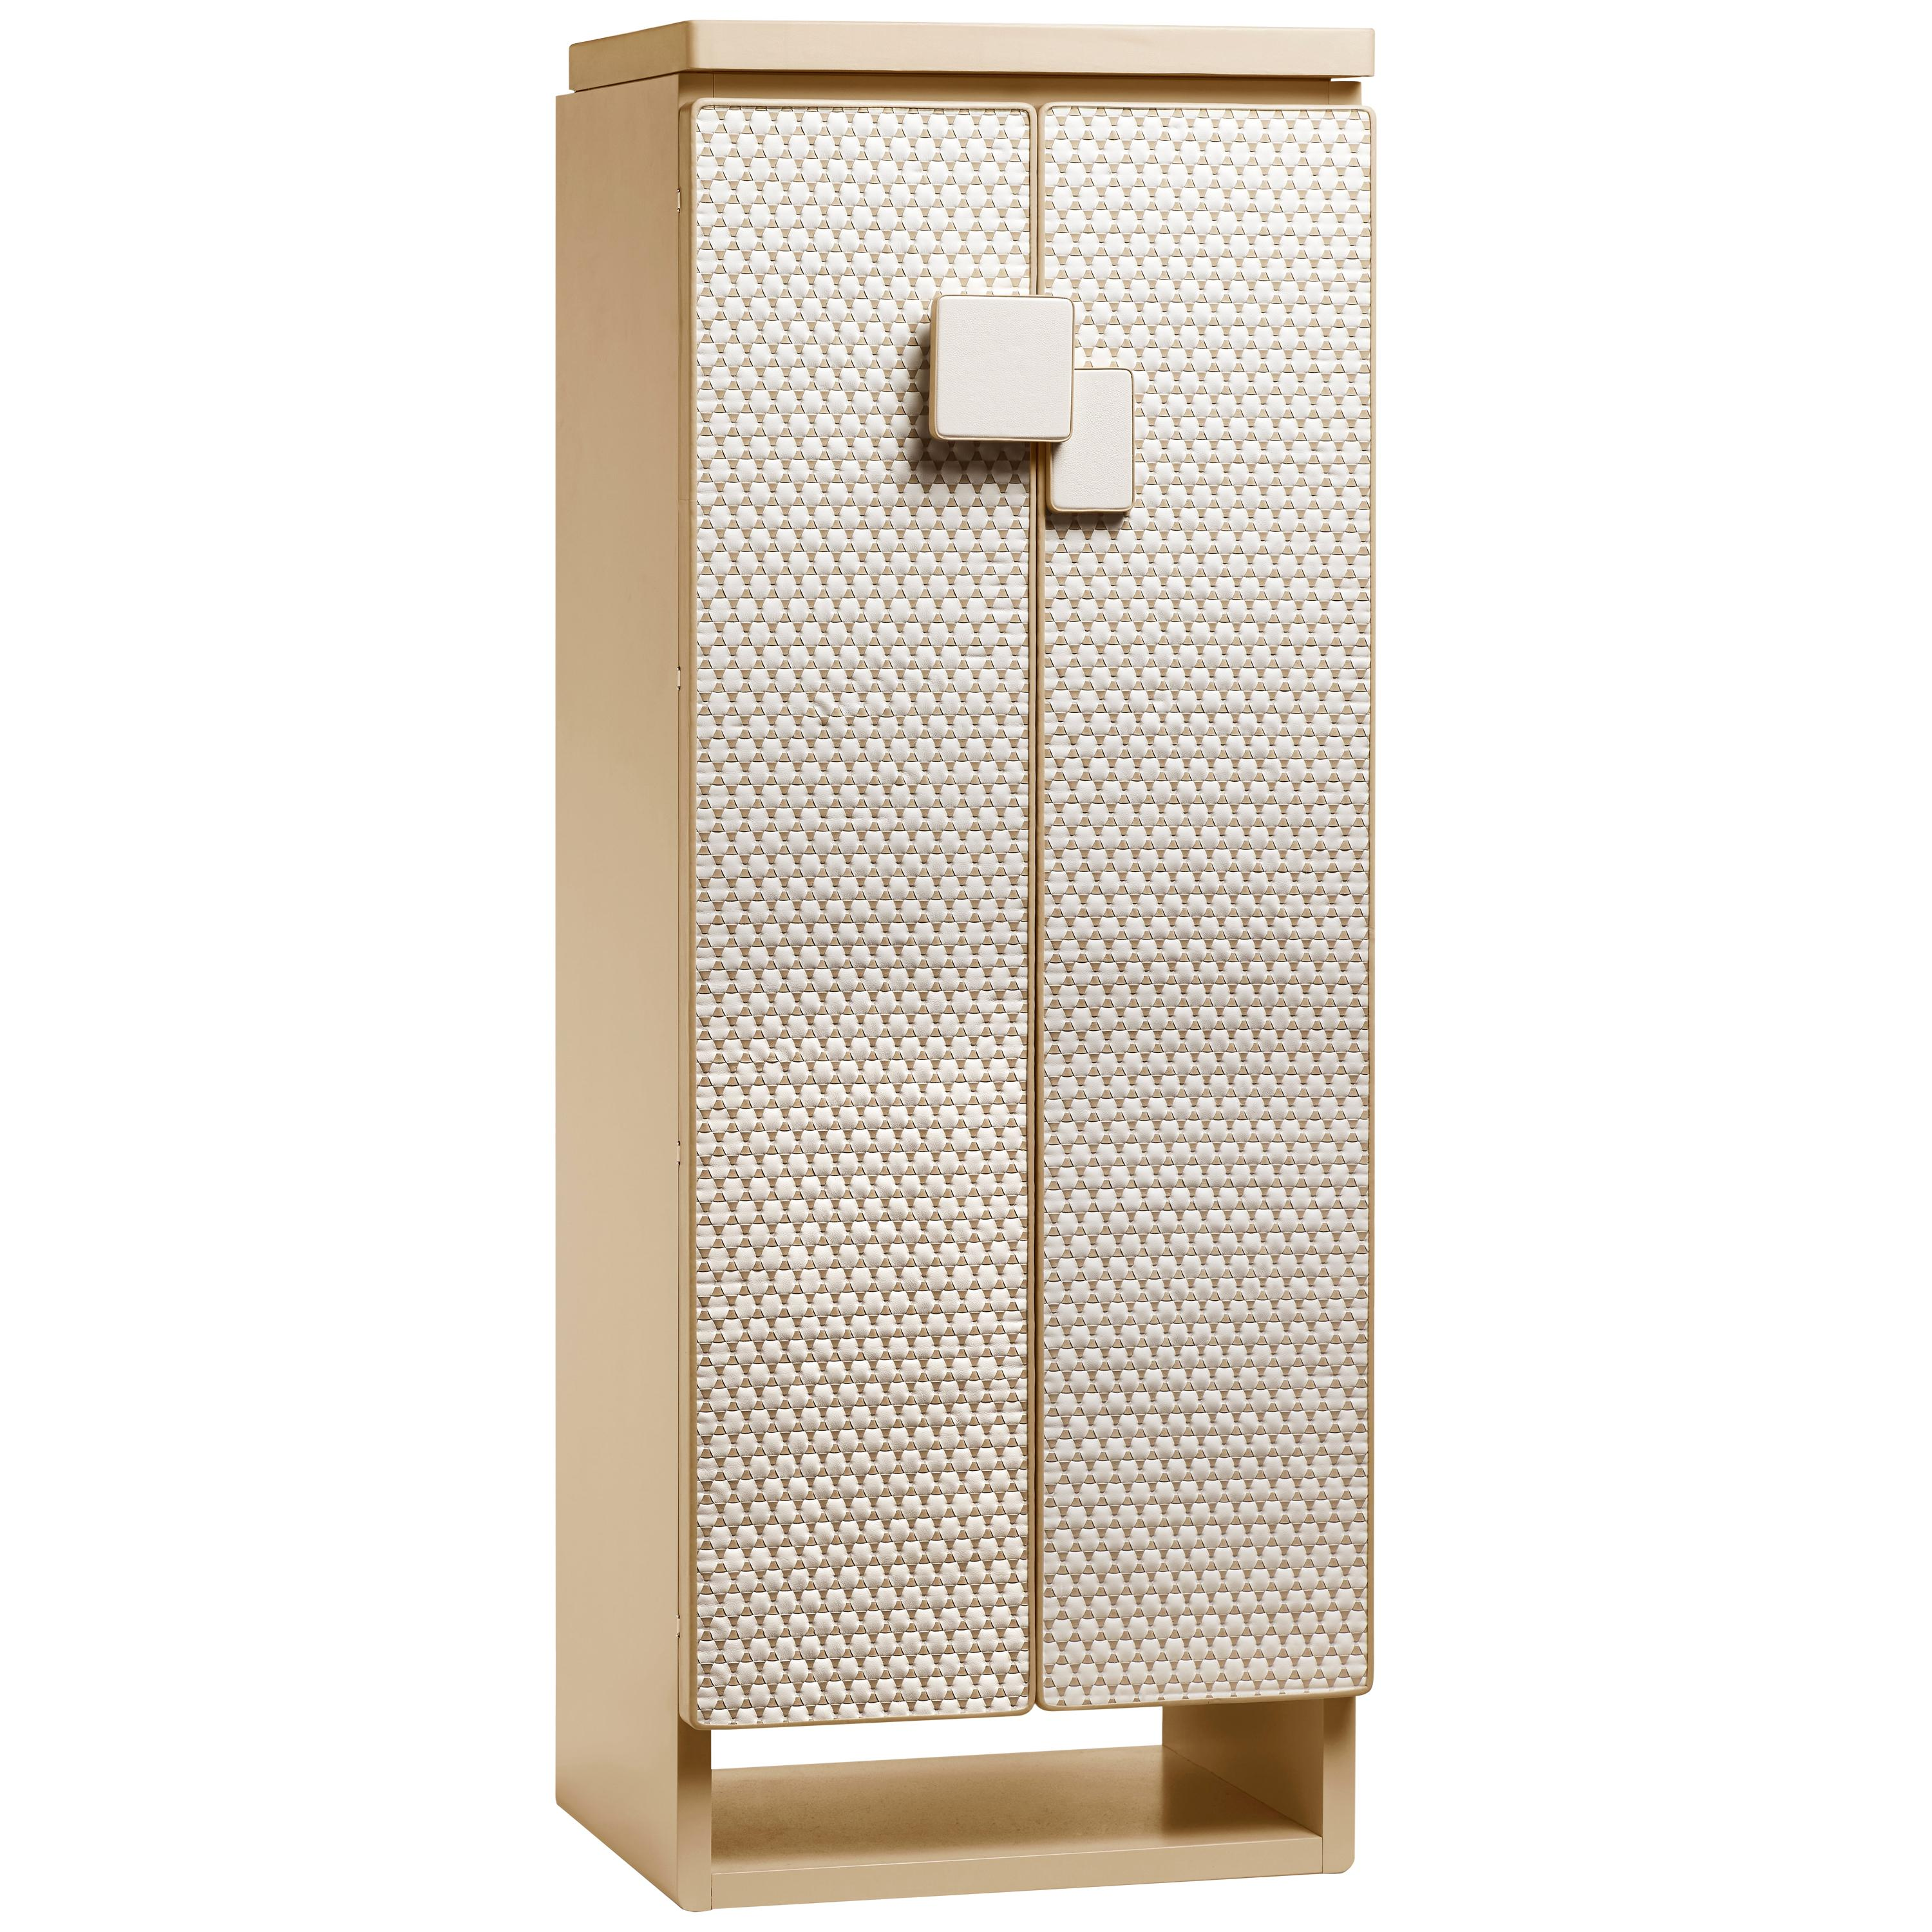 Agresti Gioia Intreccio Contemporary Armored Jewelry Armoire Safe